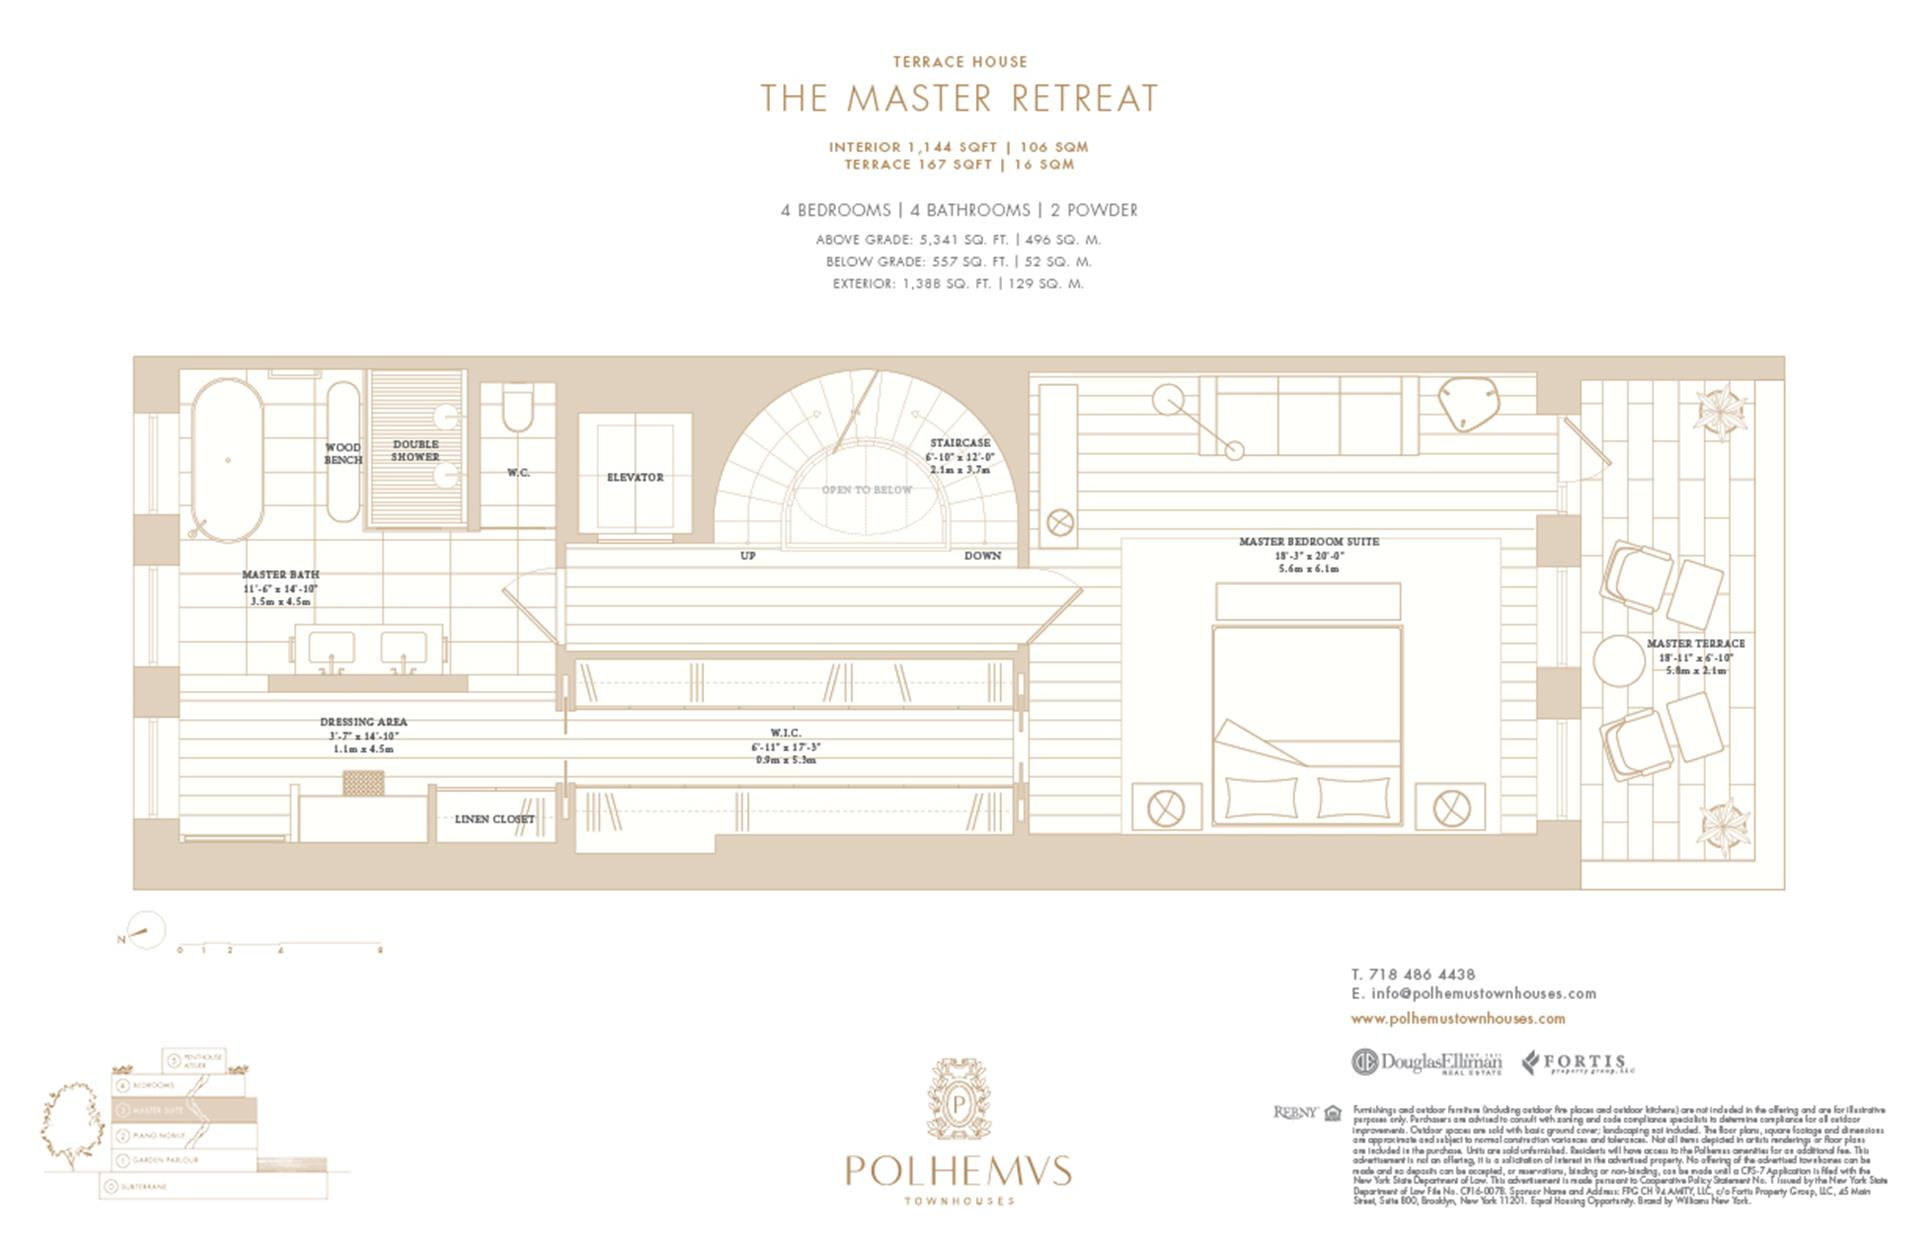 Floor plan of Polhemus, 96 Amity St - Cobble Hill, New York